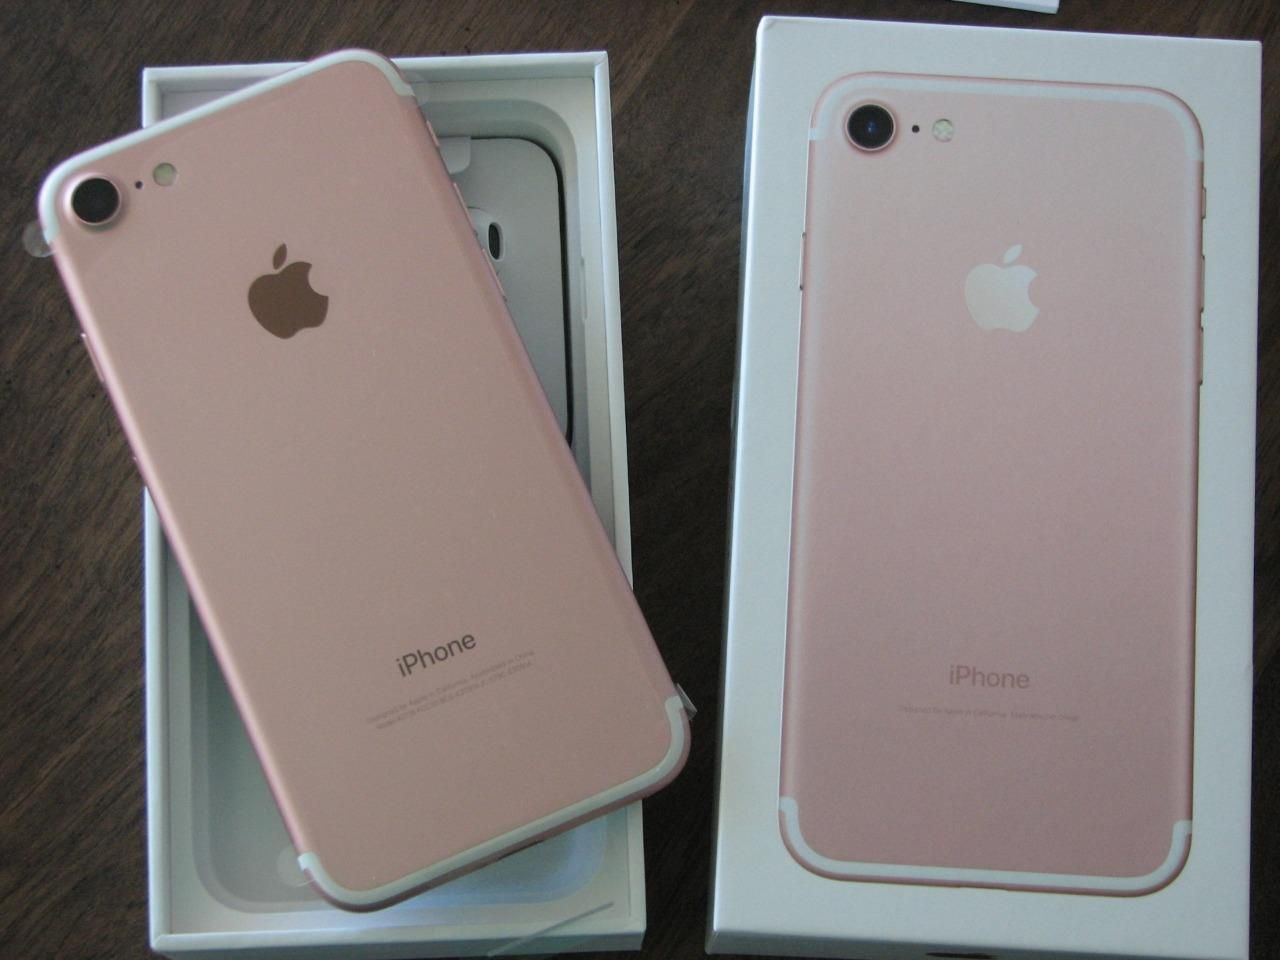 latest brand new apple iphone 7 128gb rose gold unlocked at t 4g lte gsm phone ebay iphone. Black Bedroom Furniture Sets. Home Design Ideas